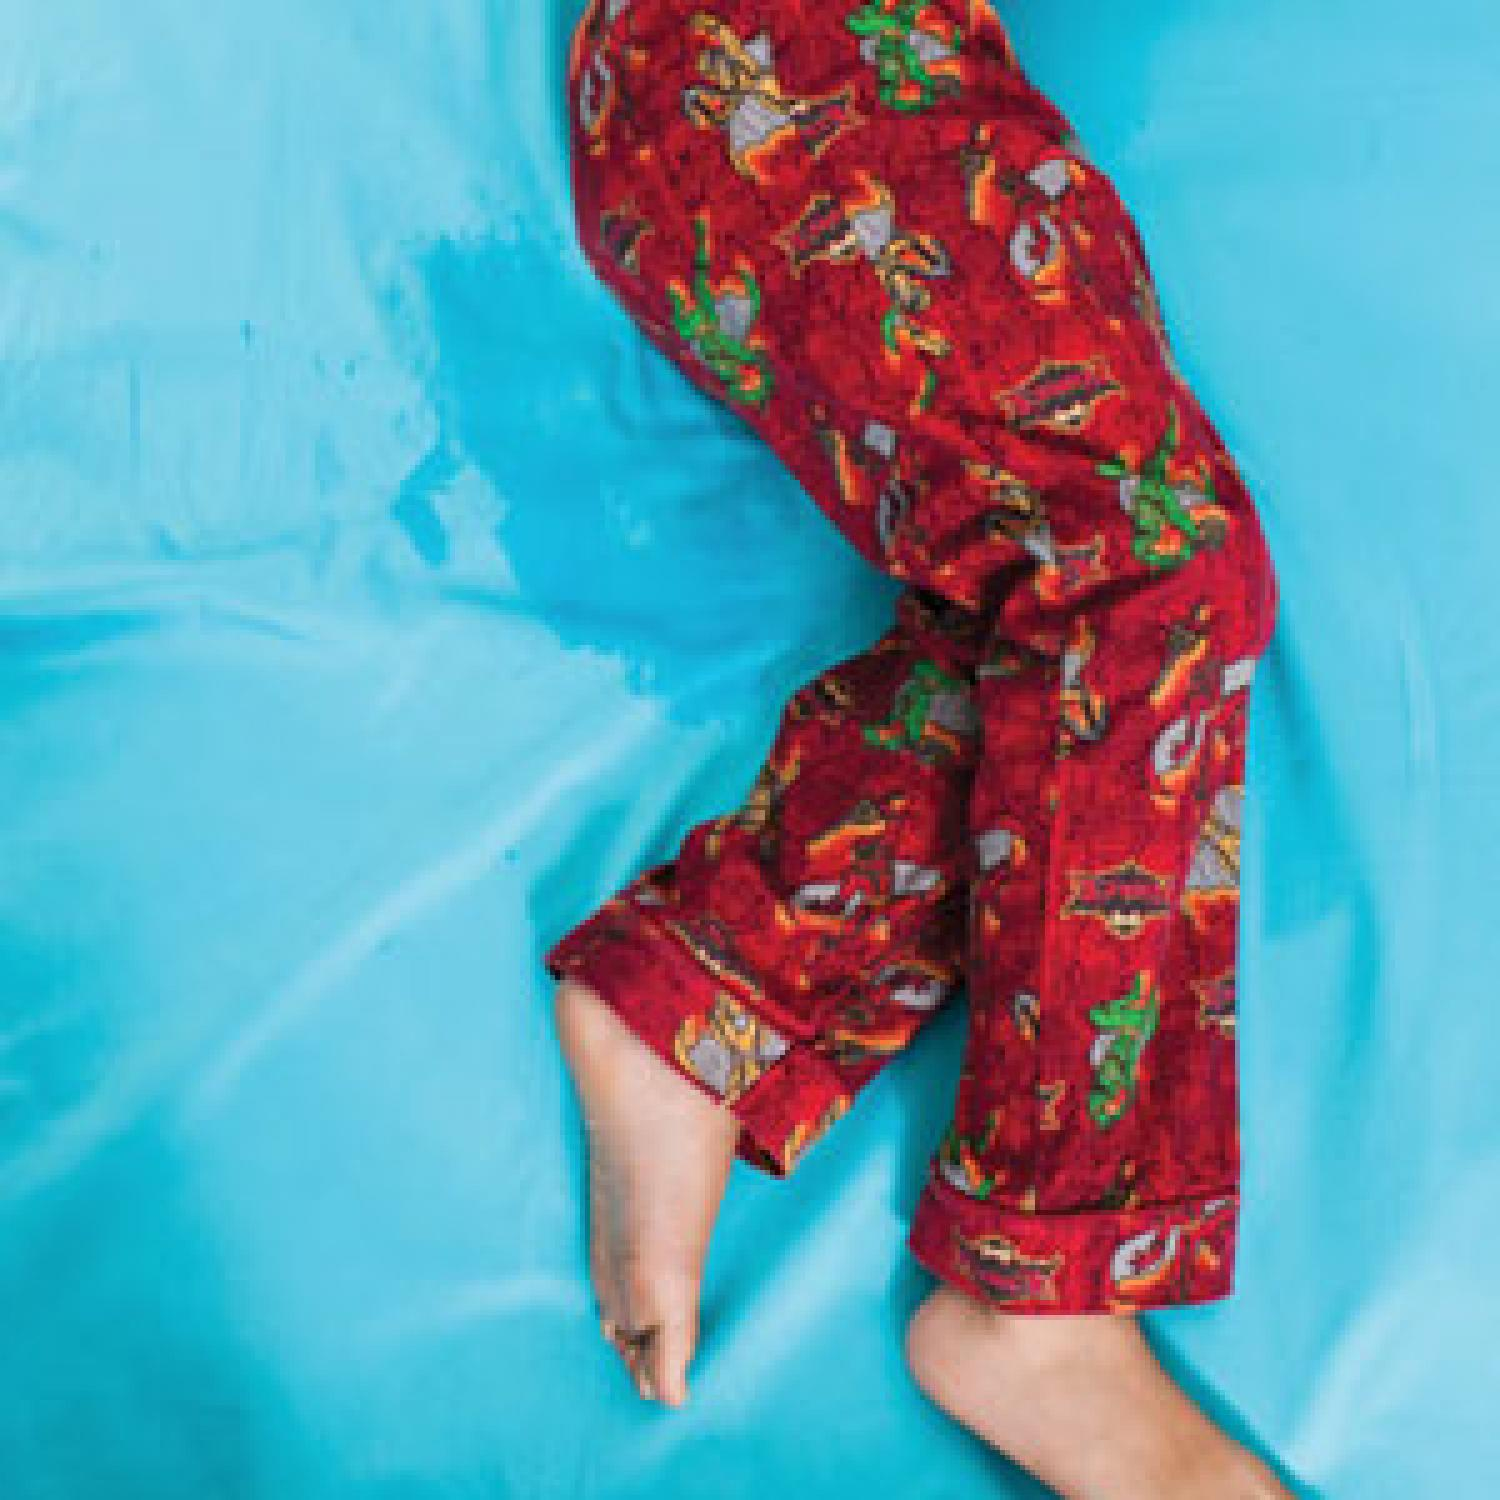 How To Get My Child To Stop Wetting The Bed